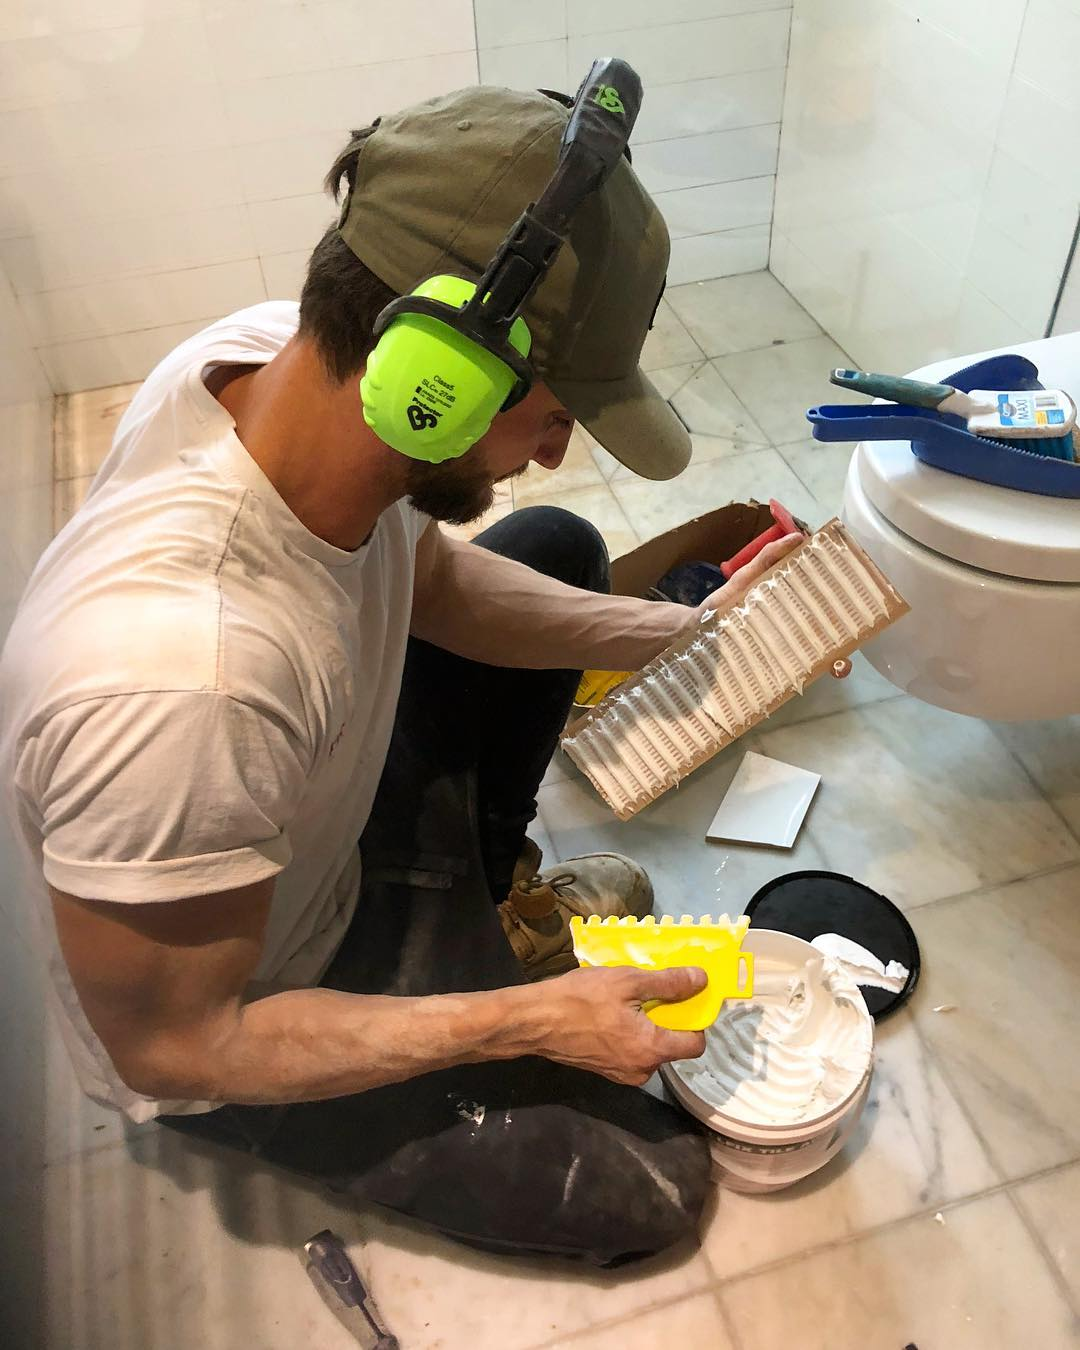 A worker of Pro Projects adding glue to tiles in a bathroom in Bankstown Sydney